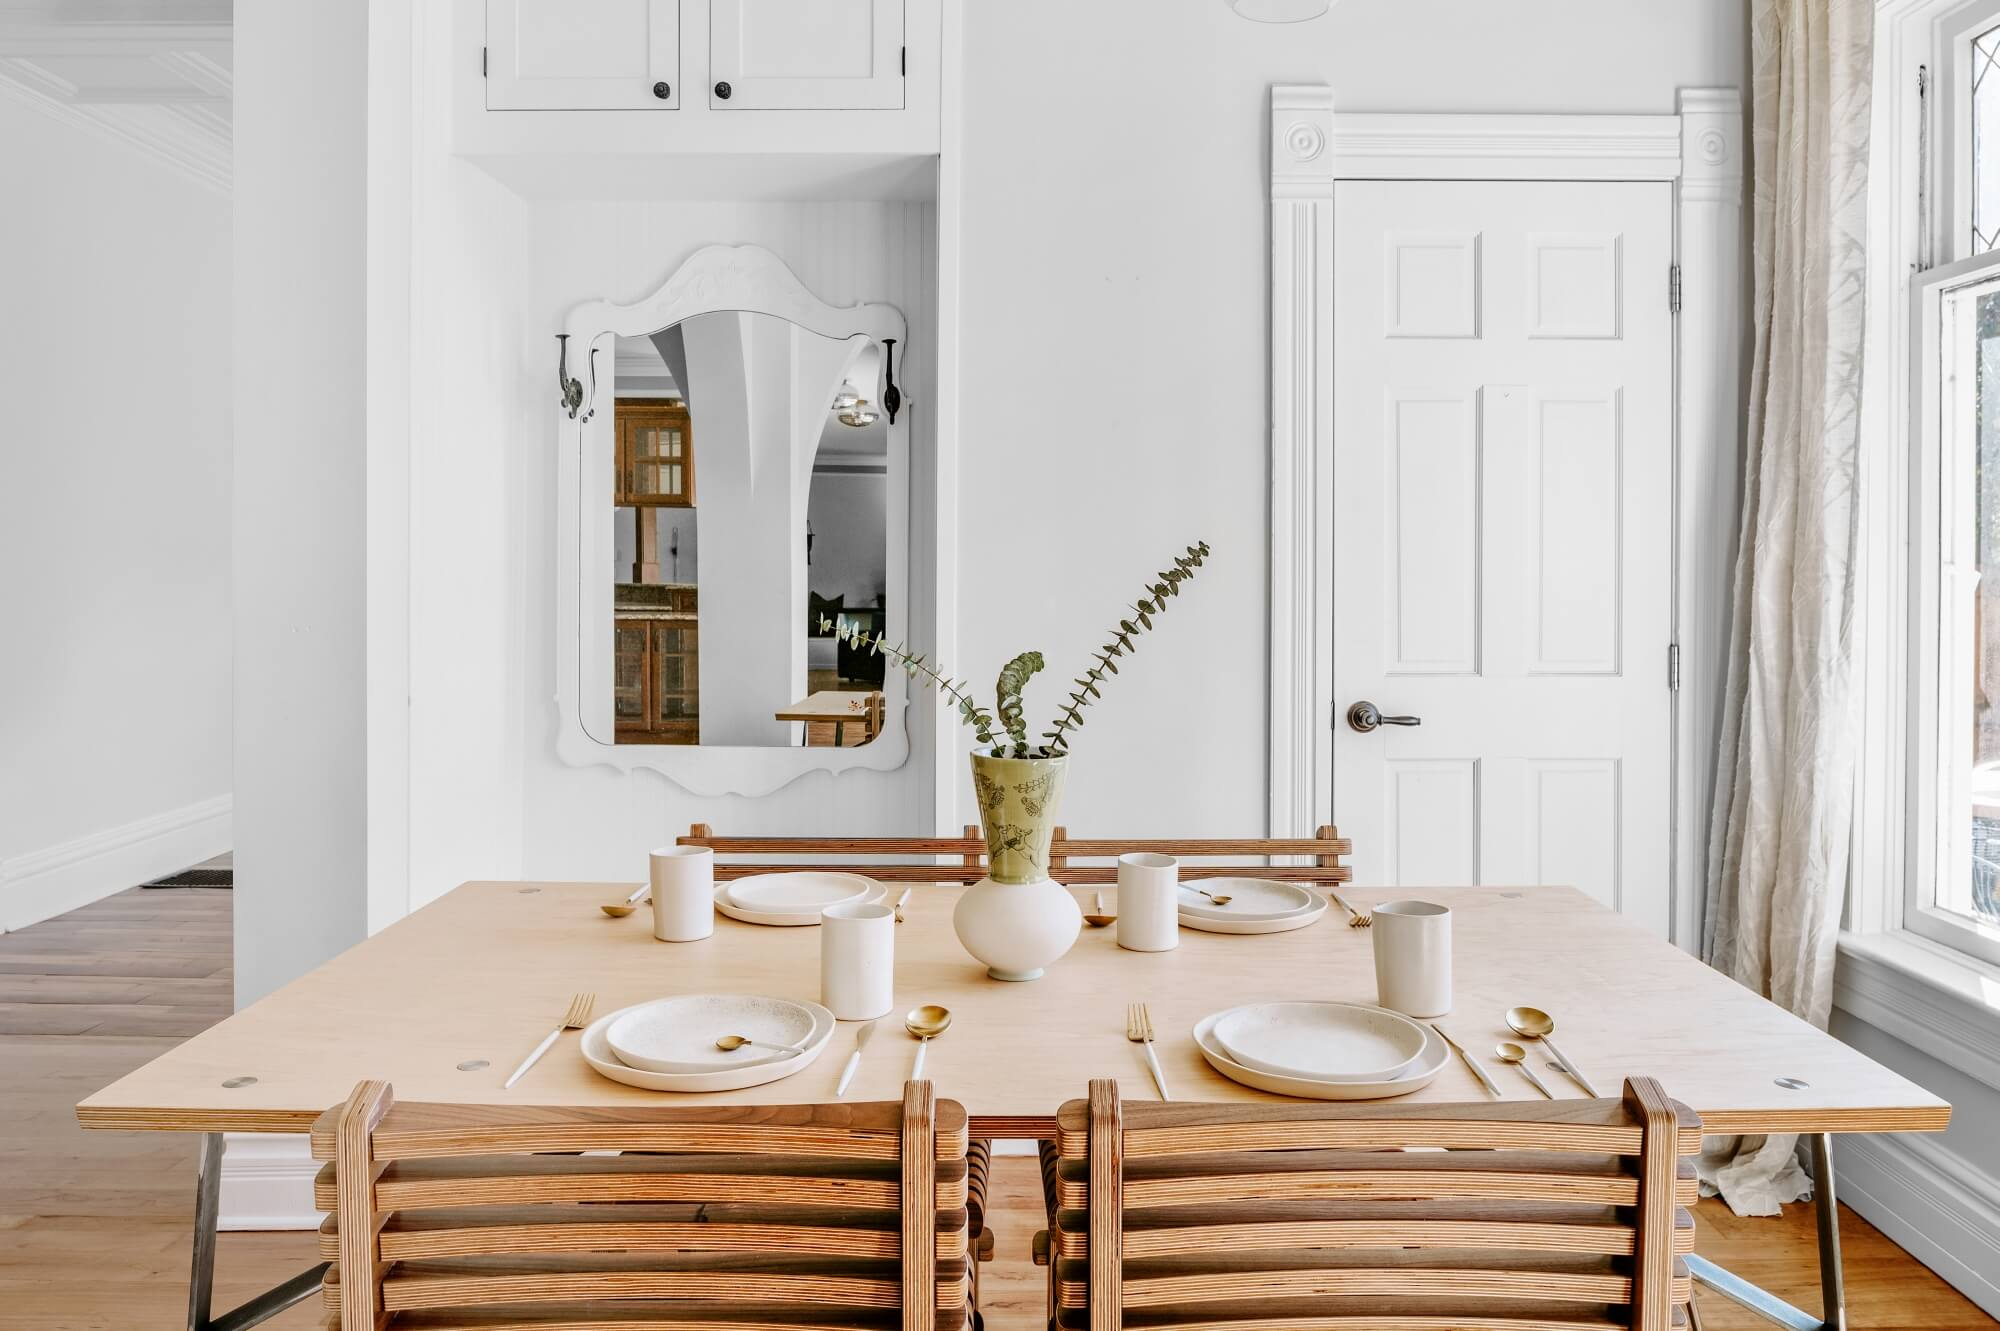 Birch wood dining table in a light room.